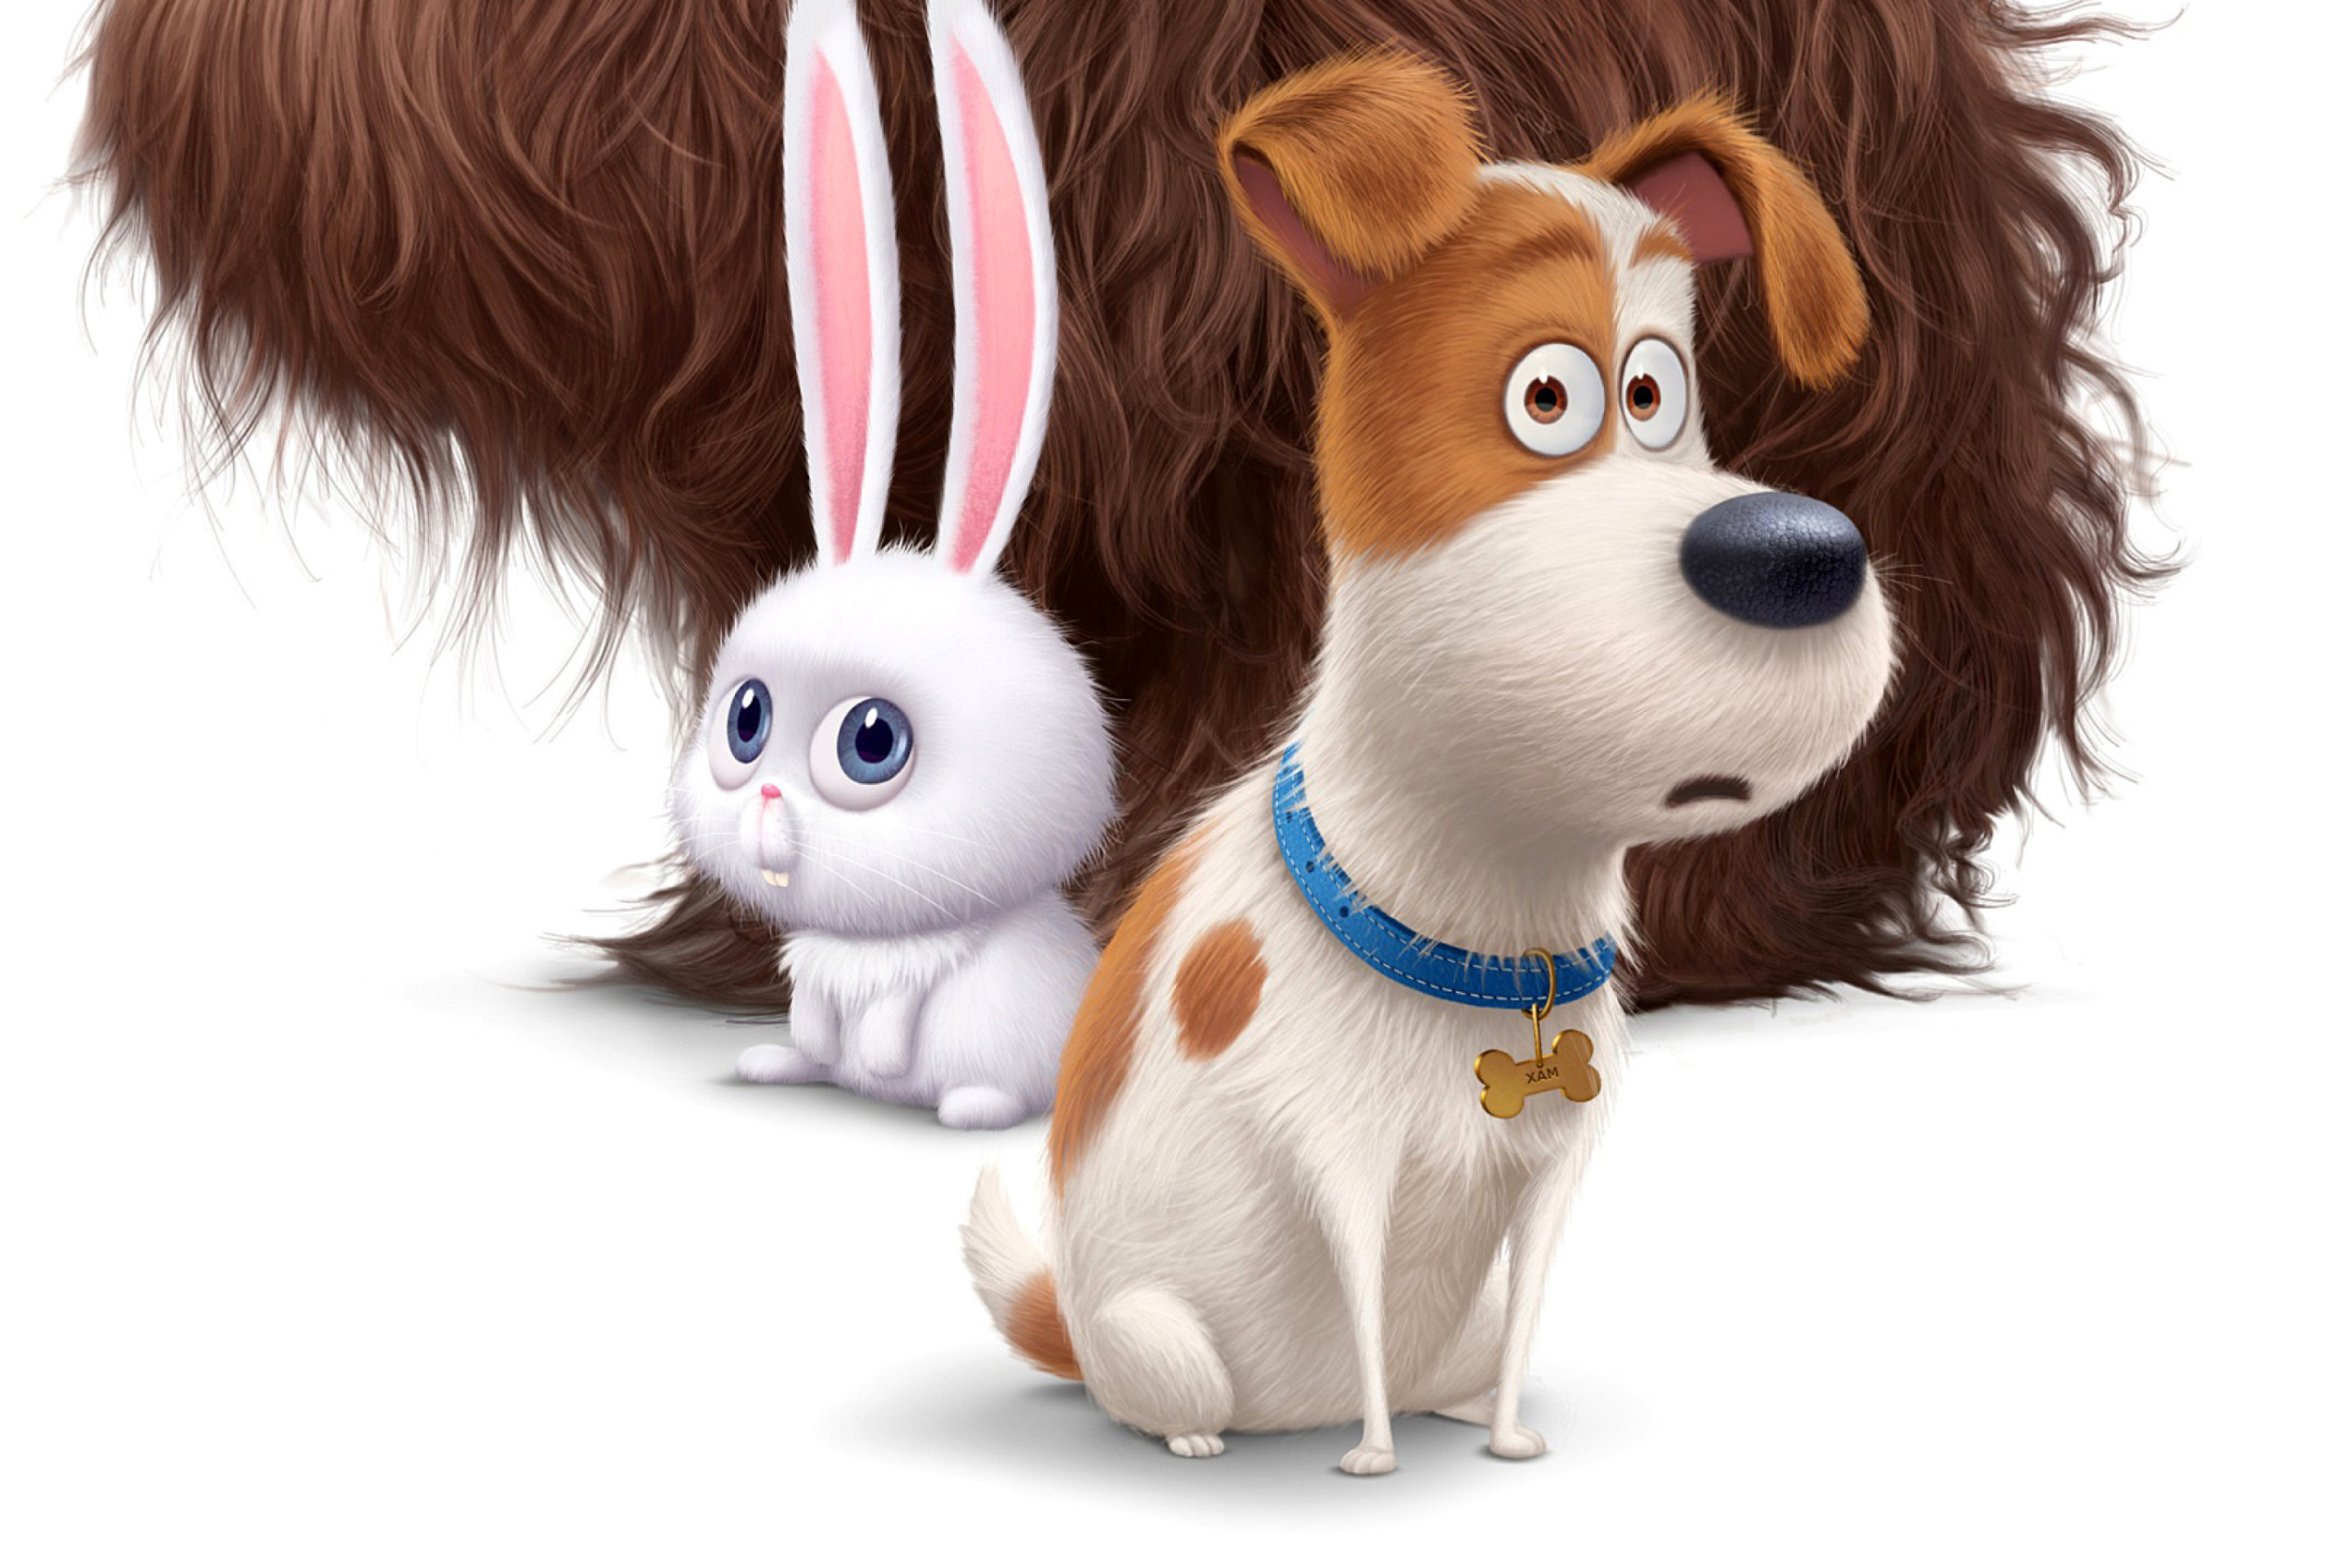 The Secret Life Of Pets 2016 Hindi Download: The Secret Life Of Pets Movie 2016 Wallpaper For 2880x1920